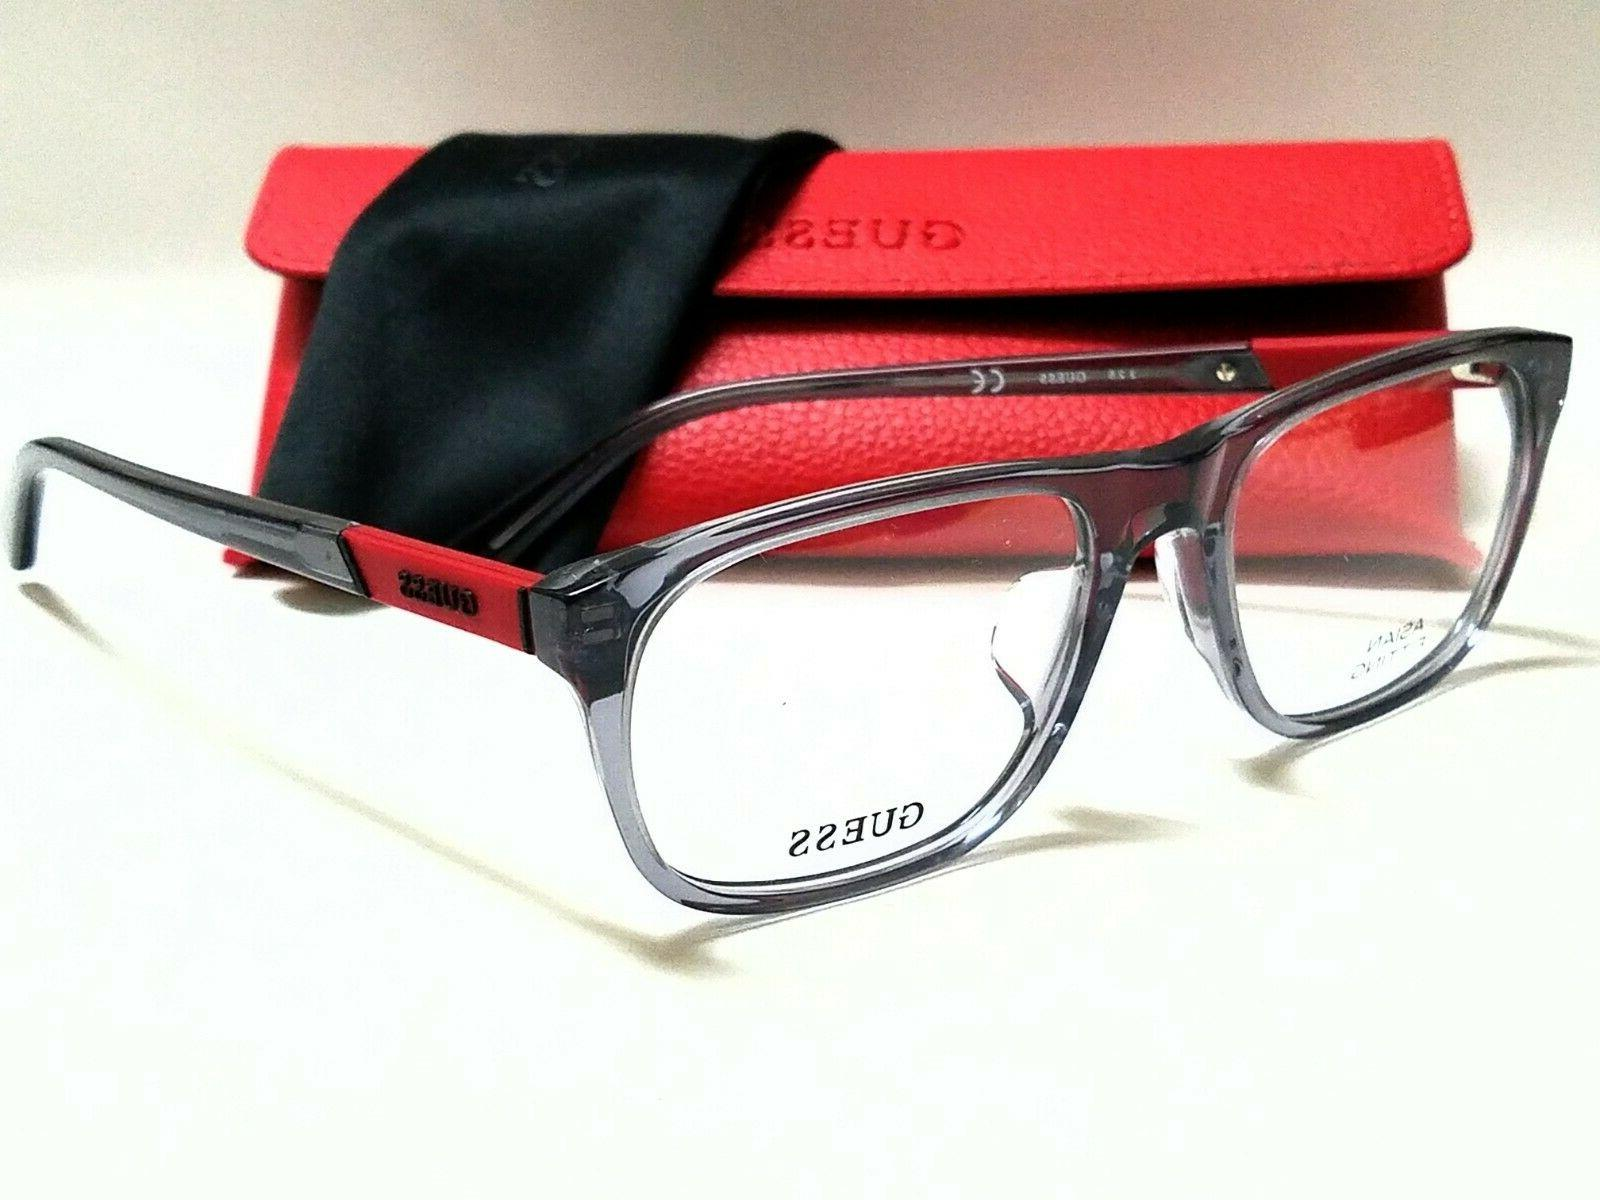 new authentic gu1866 f grey red asian